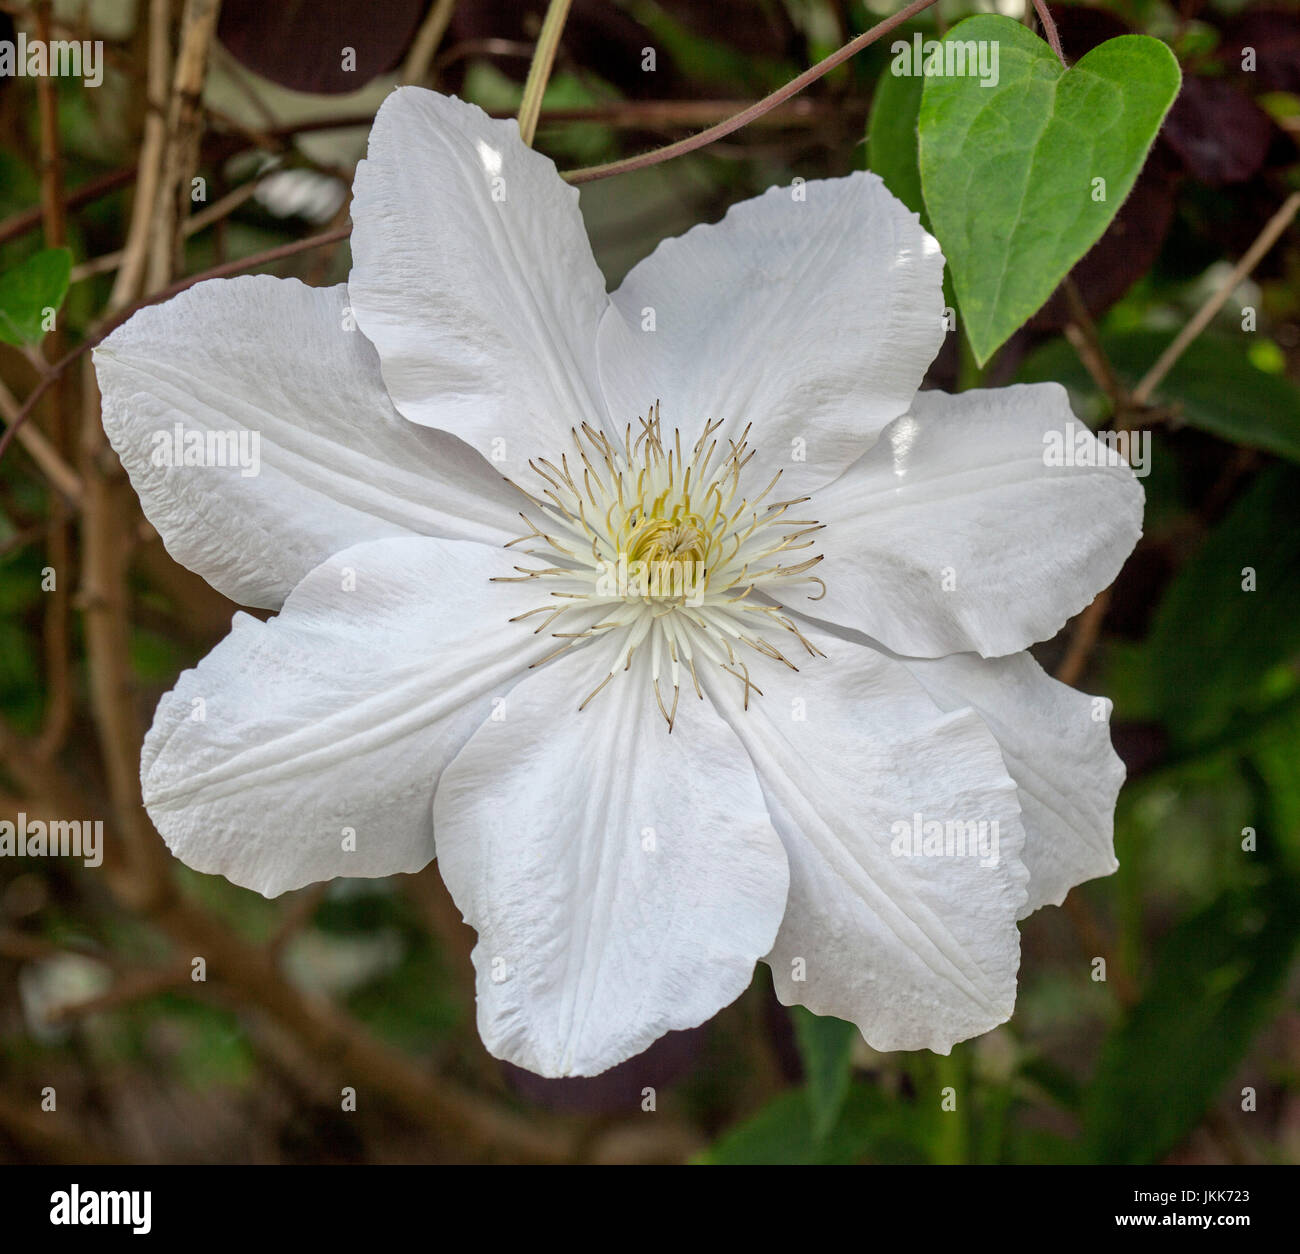 Large White Flower Of Clematis A Deciduous Climber Against Dark